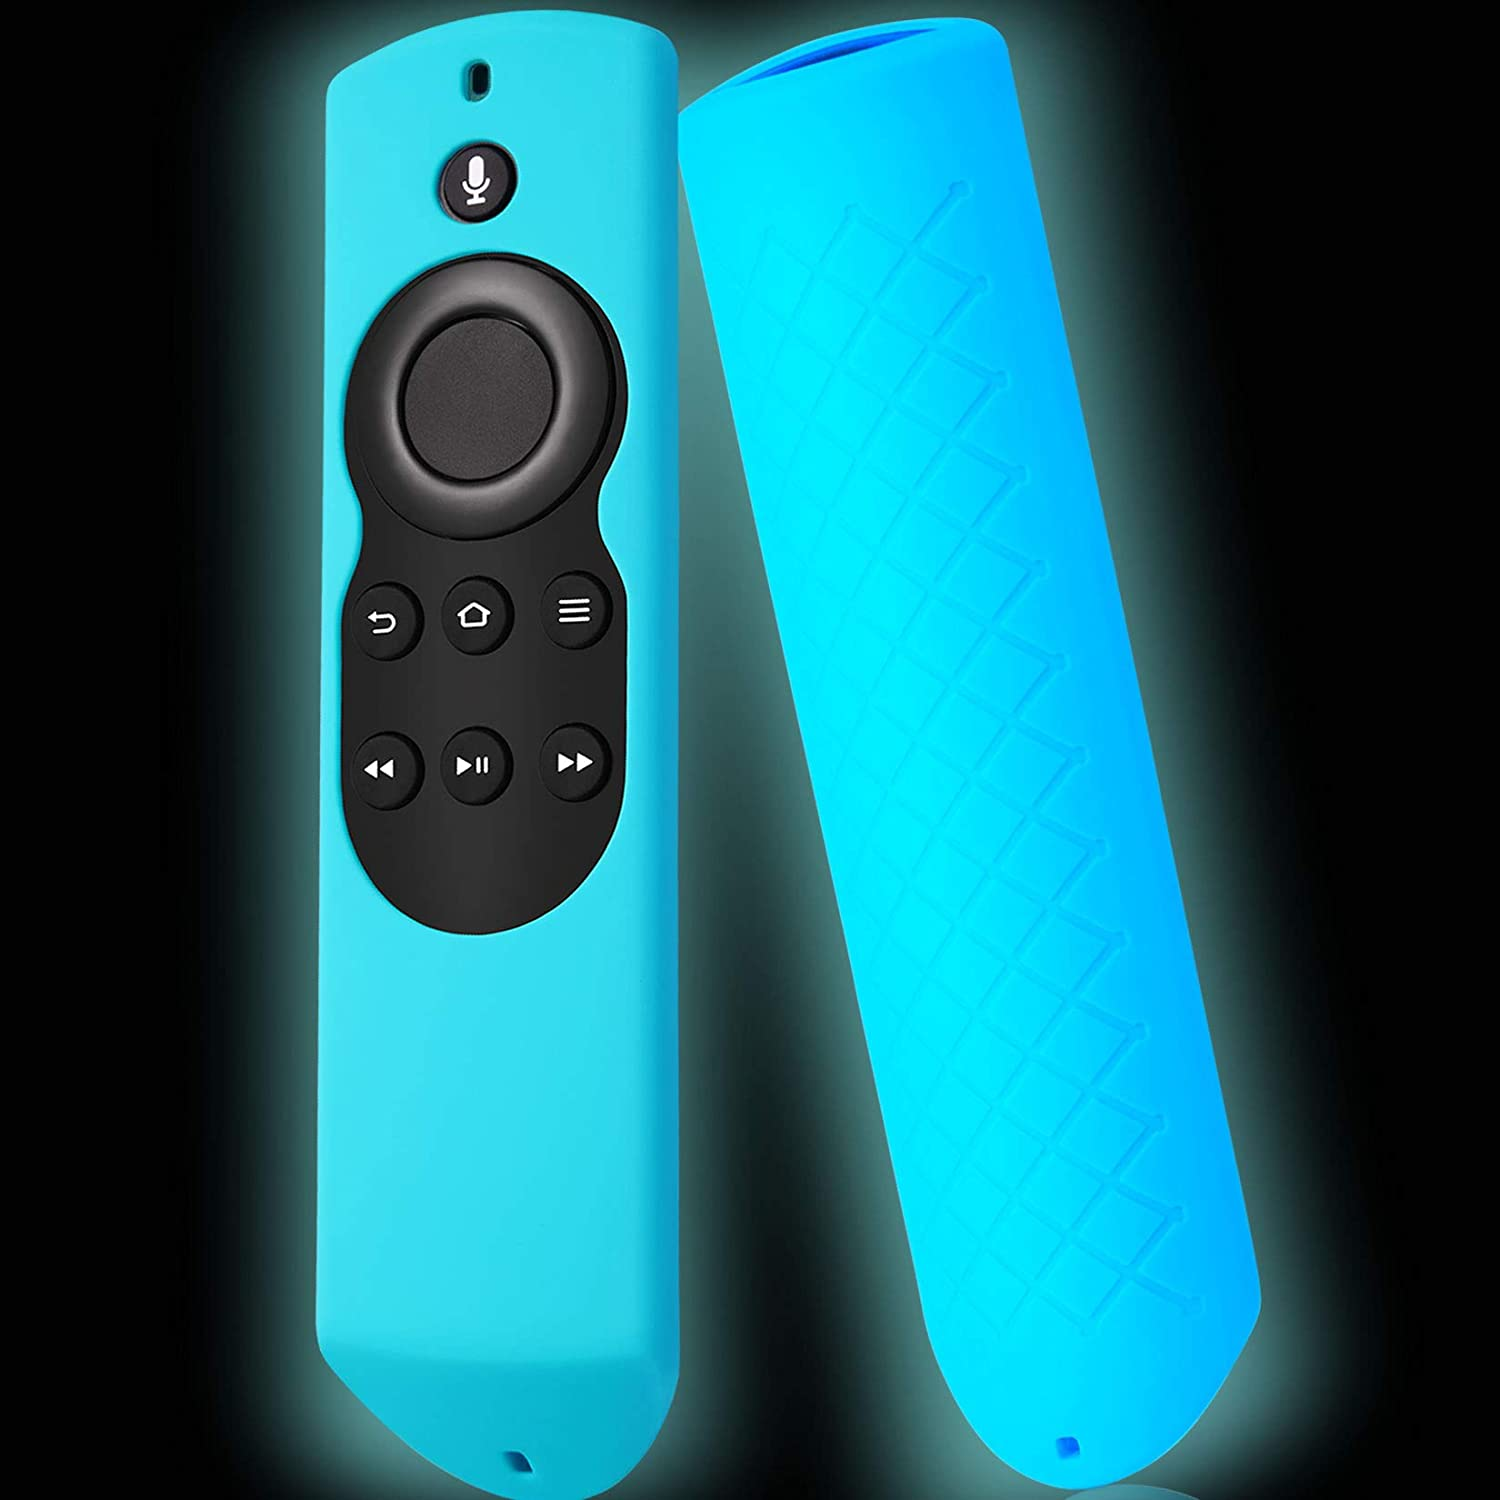 Packzprint Firestick Cover Compatible with Amazon Fire Stick Remote, Cover for Fire Stick Remote Control Glow in The Dark, Firestickremote Cover Glow Blue